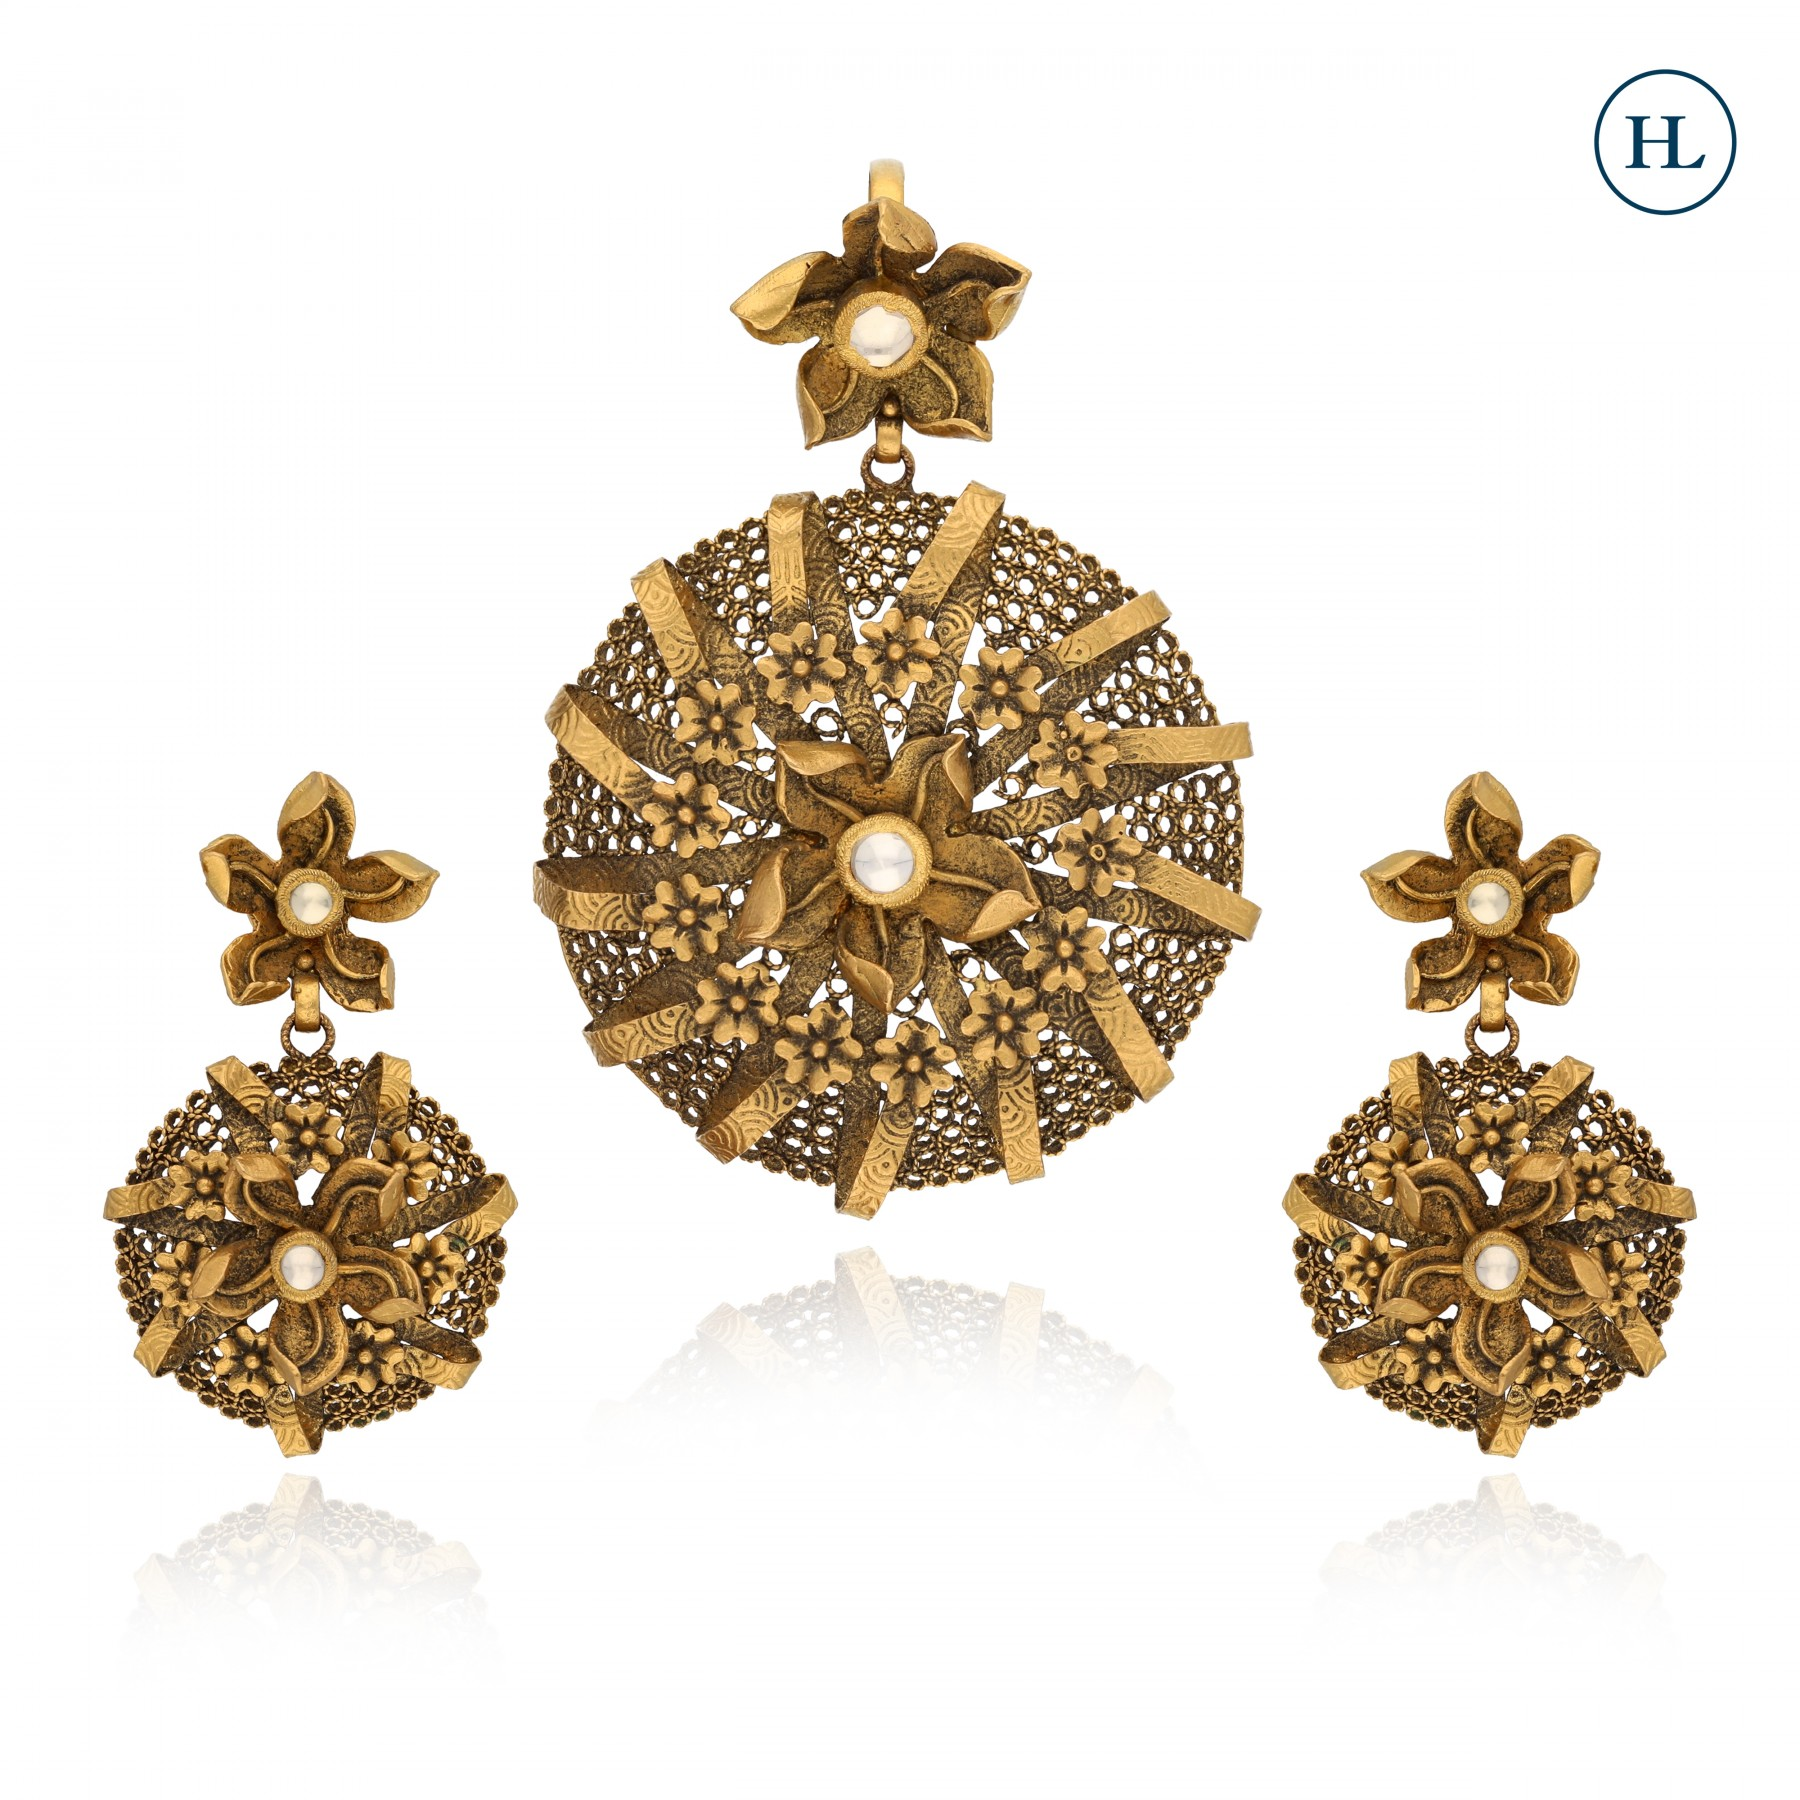 Antique-Styled Gold Flower Pendant Set